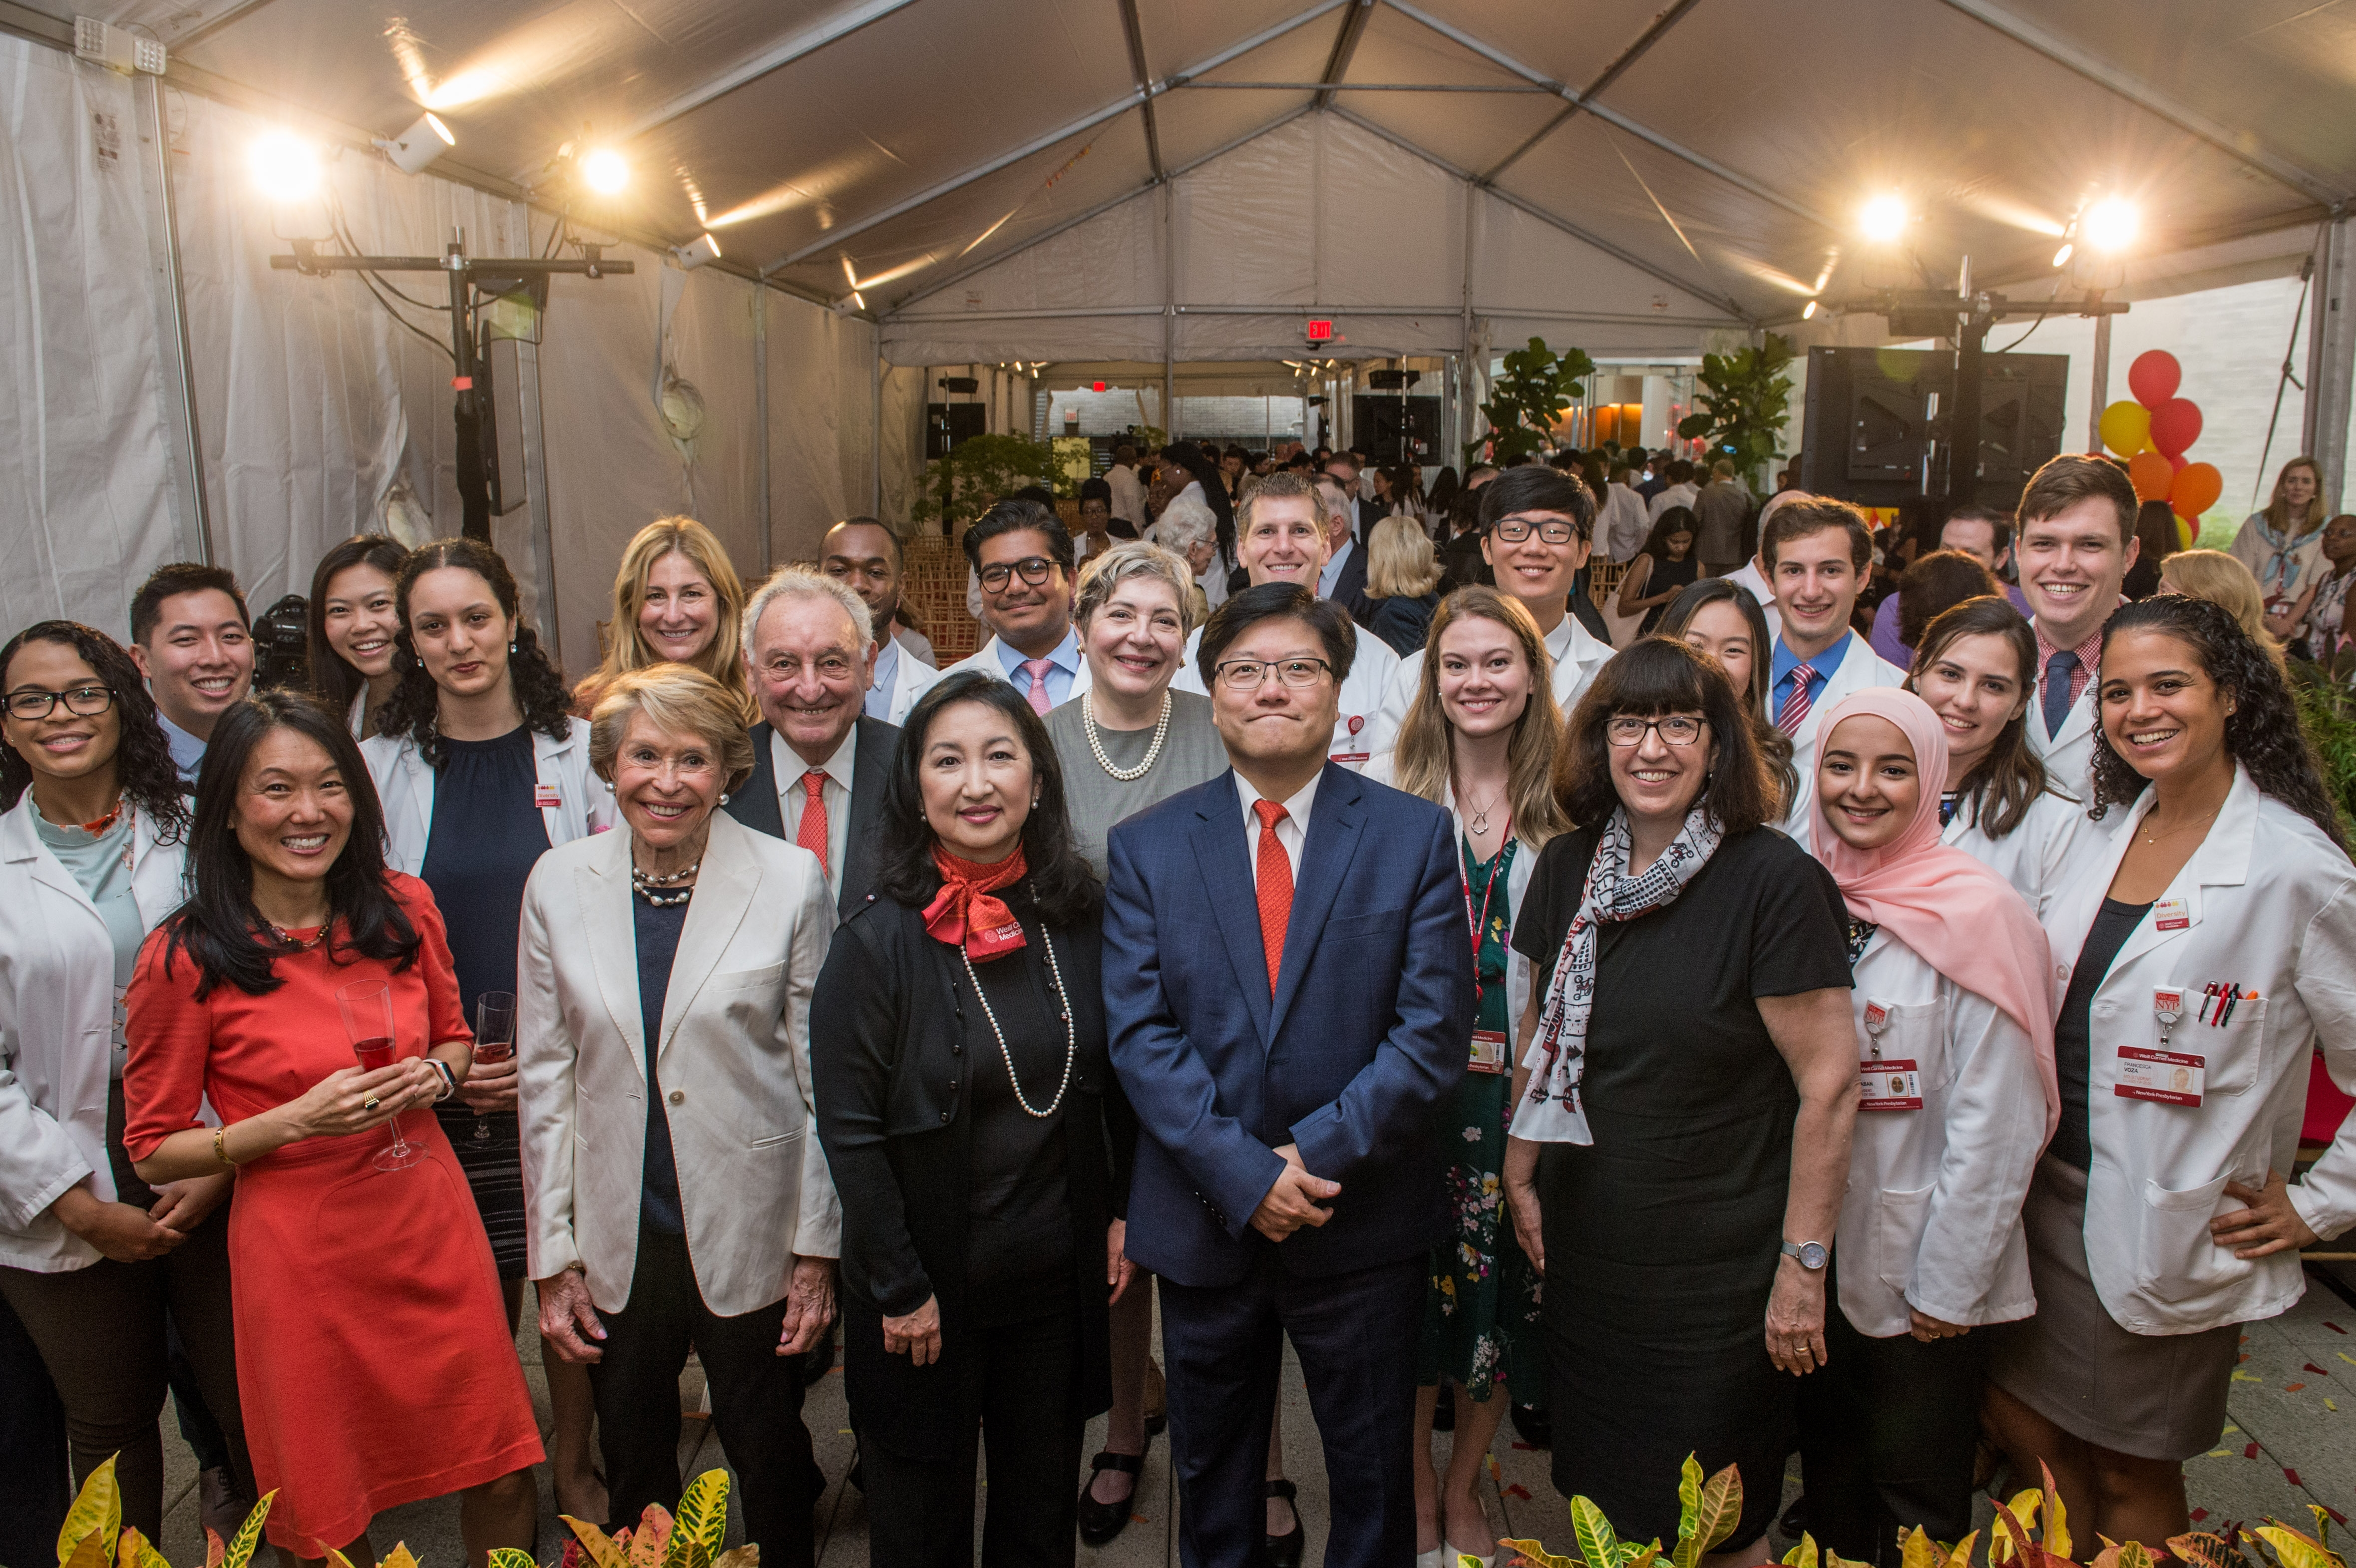 Weill Cornell Medicine leaders, benefactors and students pose during an event on Sept. 16.